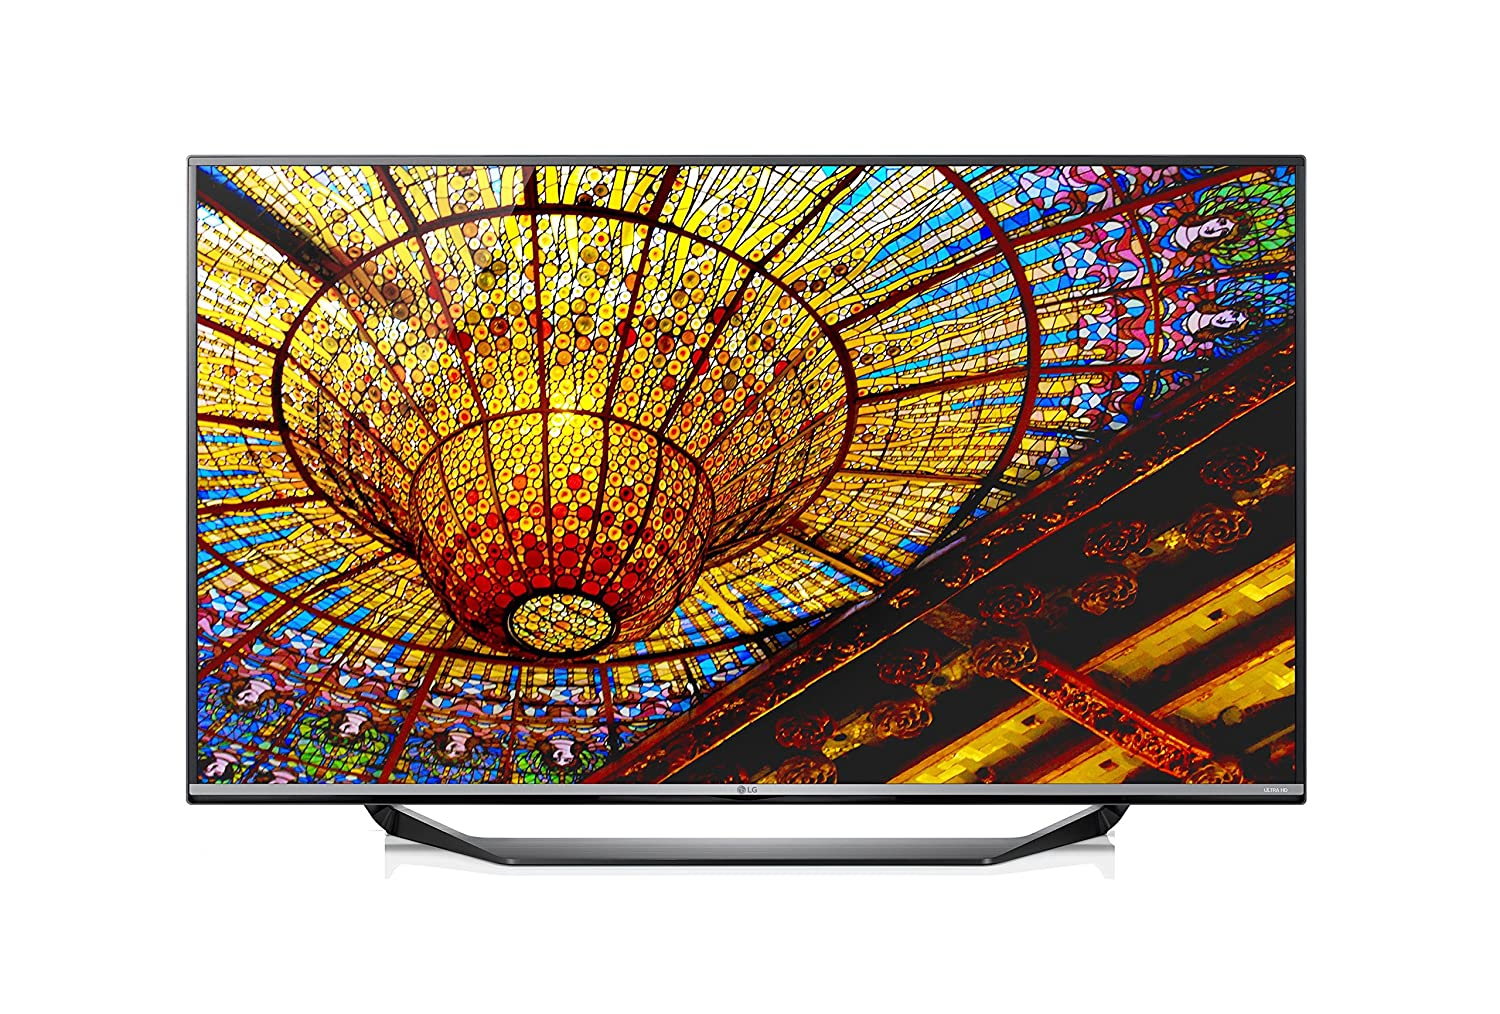 LG Electronics 49UF6700 49-Inch 4K Ultra HD LED TV